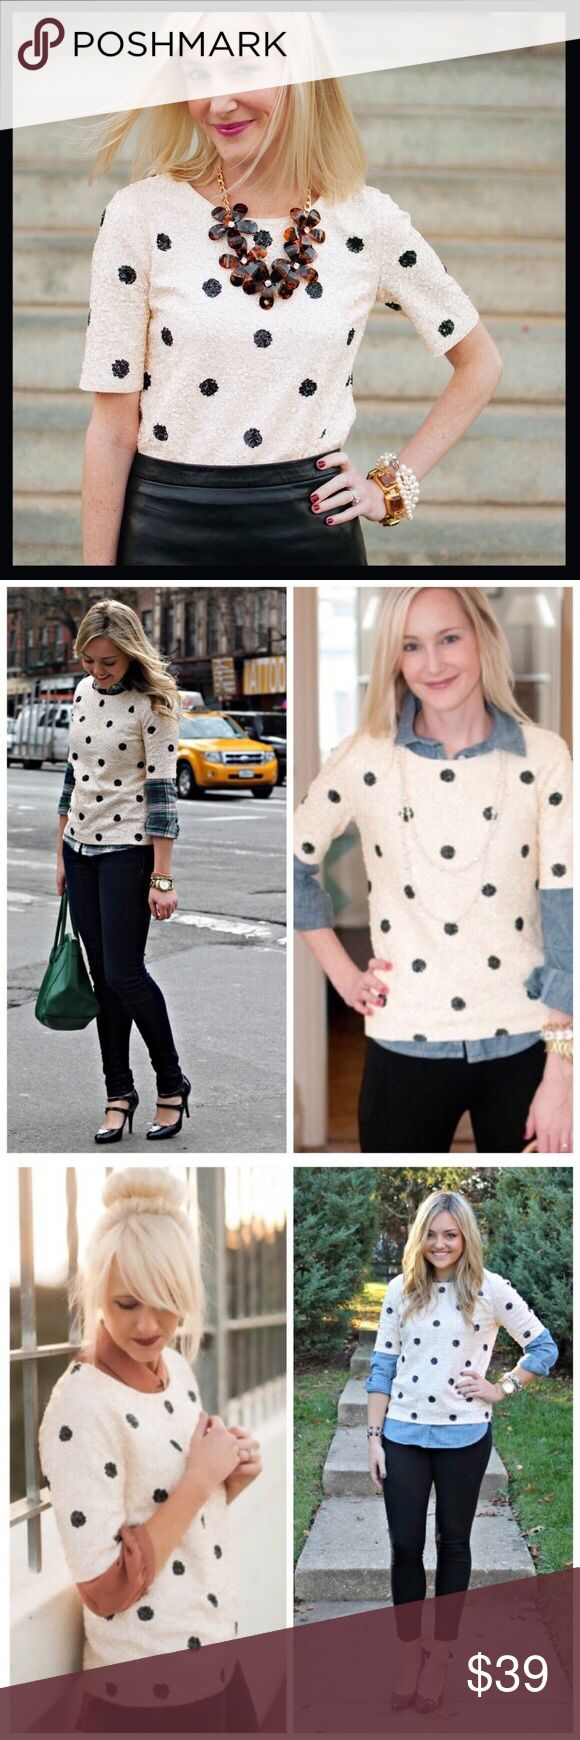 j. crew // sequin polka dot short sleeve tee cream Two of our great loves—sequins and dots—are combined in one top that we're utterly wild about. Our design team carefully configured thousands of small sequins in a light yet dense layout to create a texture with a beautiful drape, then hand-finished the neckline and seams. Great preowned condition. From J. Crew Factory. This is a must have for any J. Crew addict! J. Crew Tops Blouses